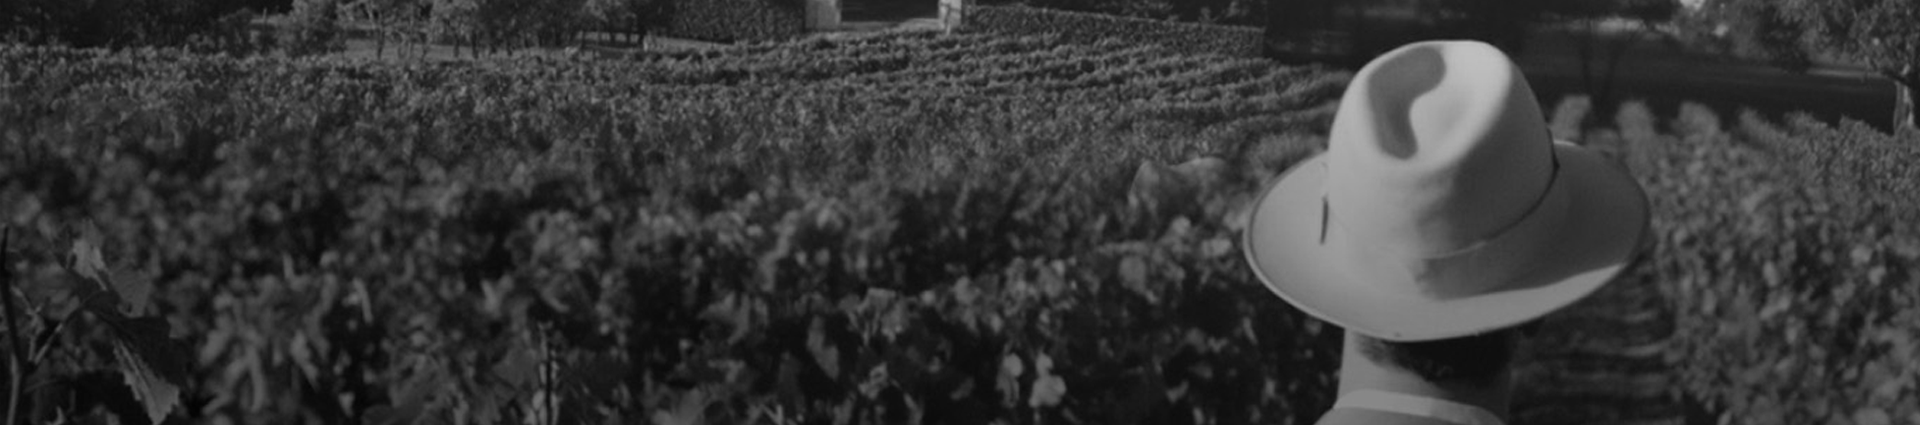 Man stands in vineyard.  Profile view, only the back of his hat is visible